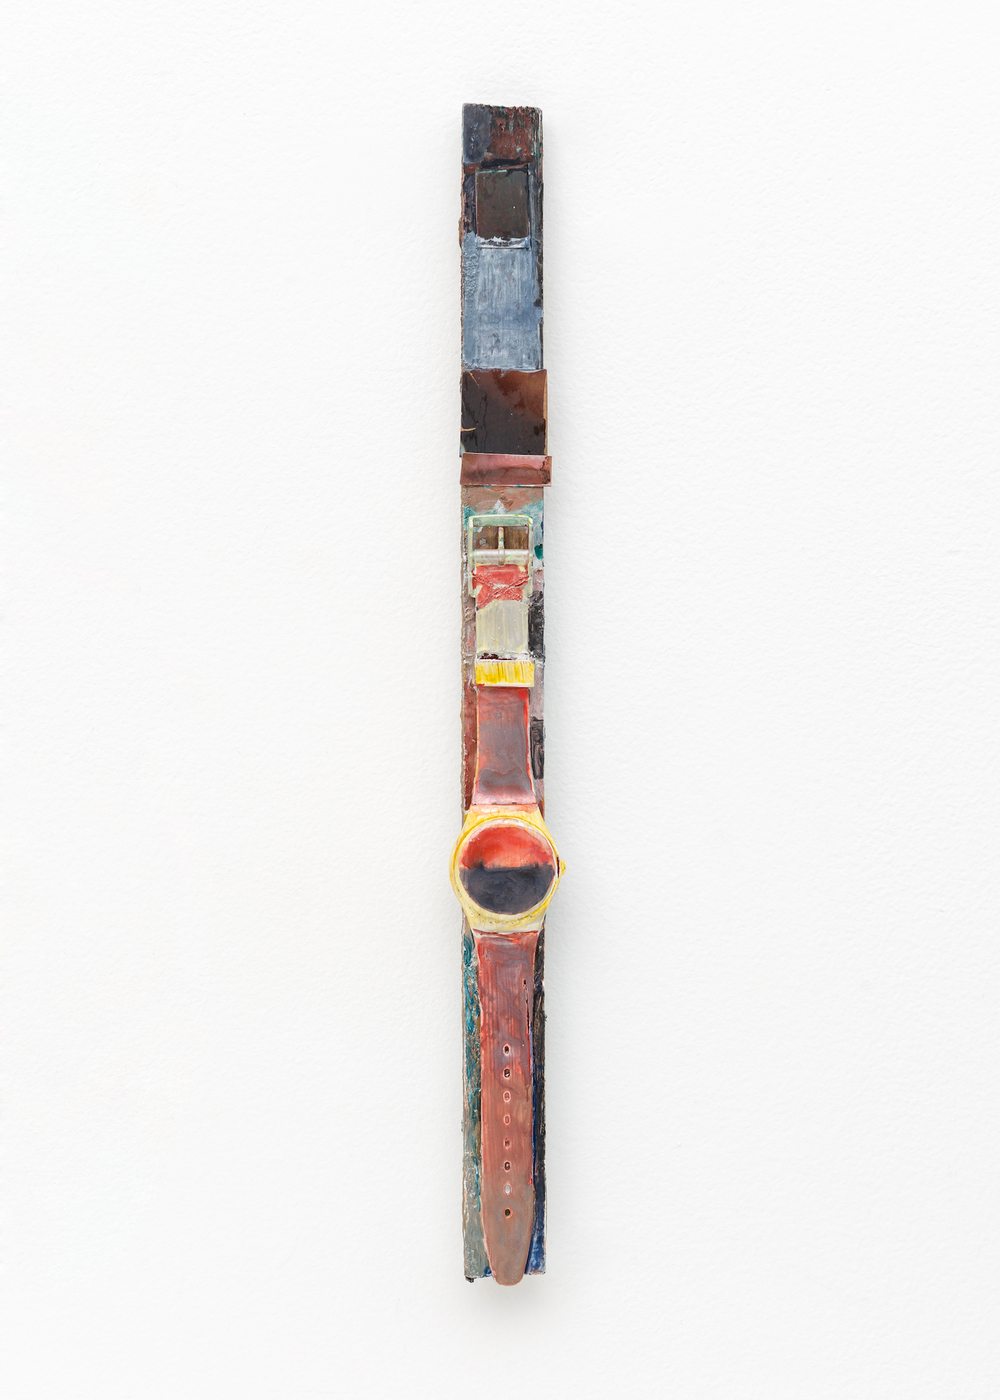 "Hayley Tompkins Shadow Clock III 2009 Wood, watercolor, watch 14"" x 1 1/4"" x 5/8"" HT005"